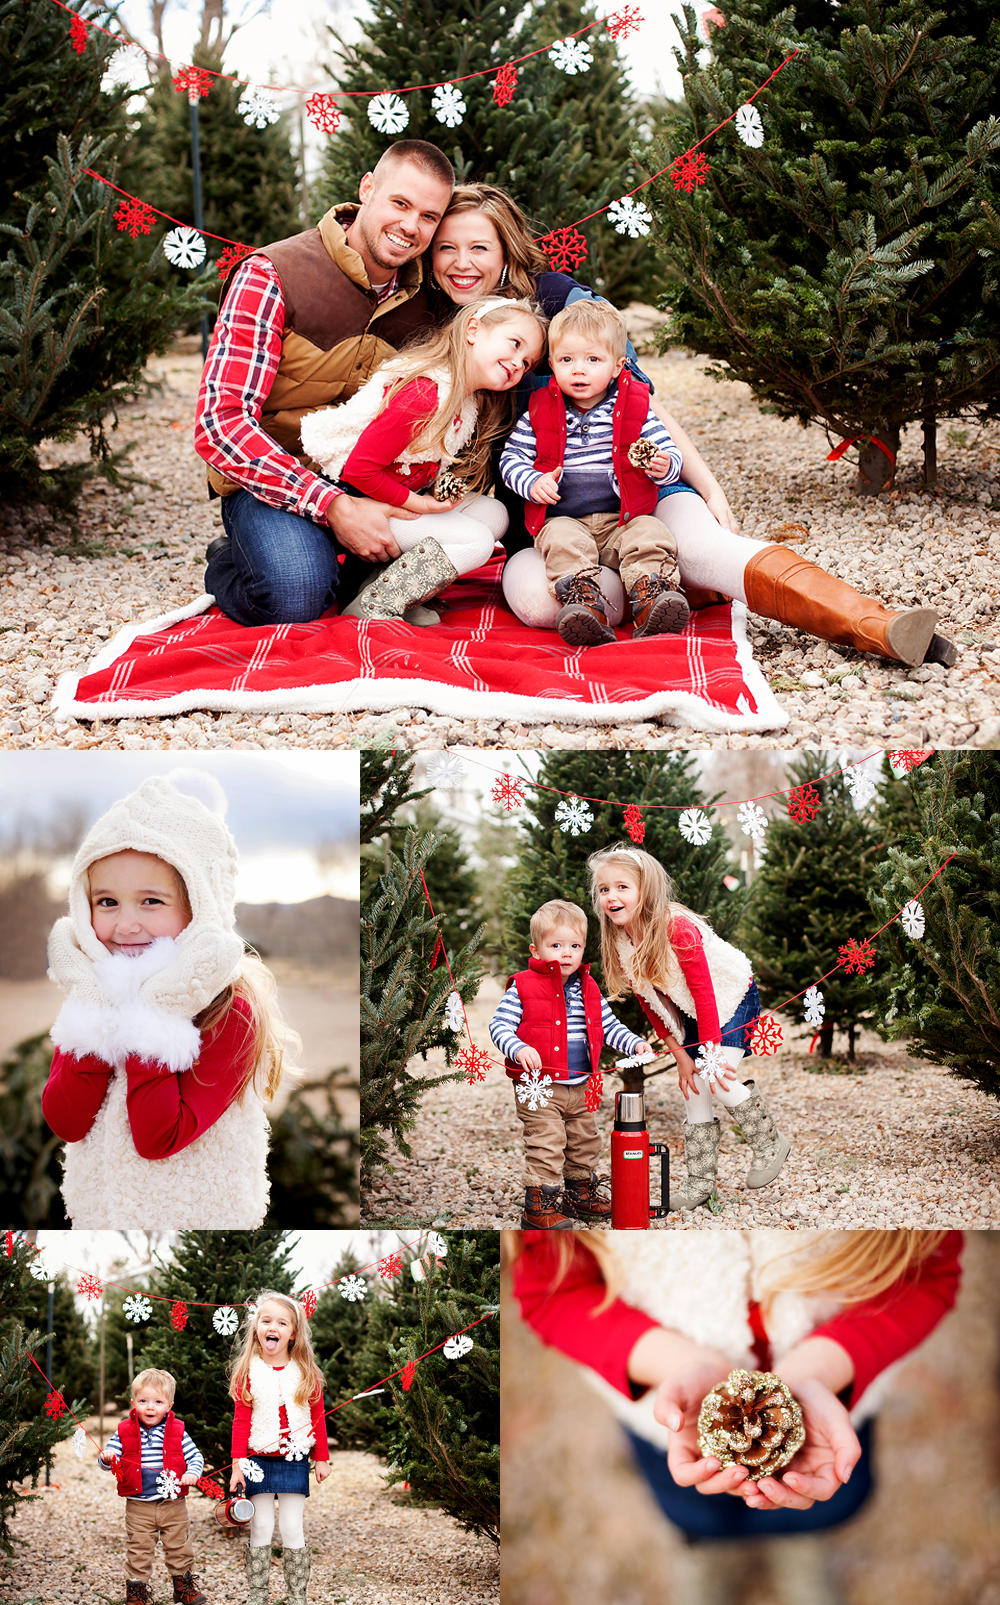 A Very MERRY Session! | Garlands, Backyard and Christmas pictures